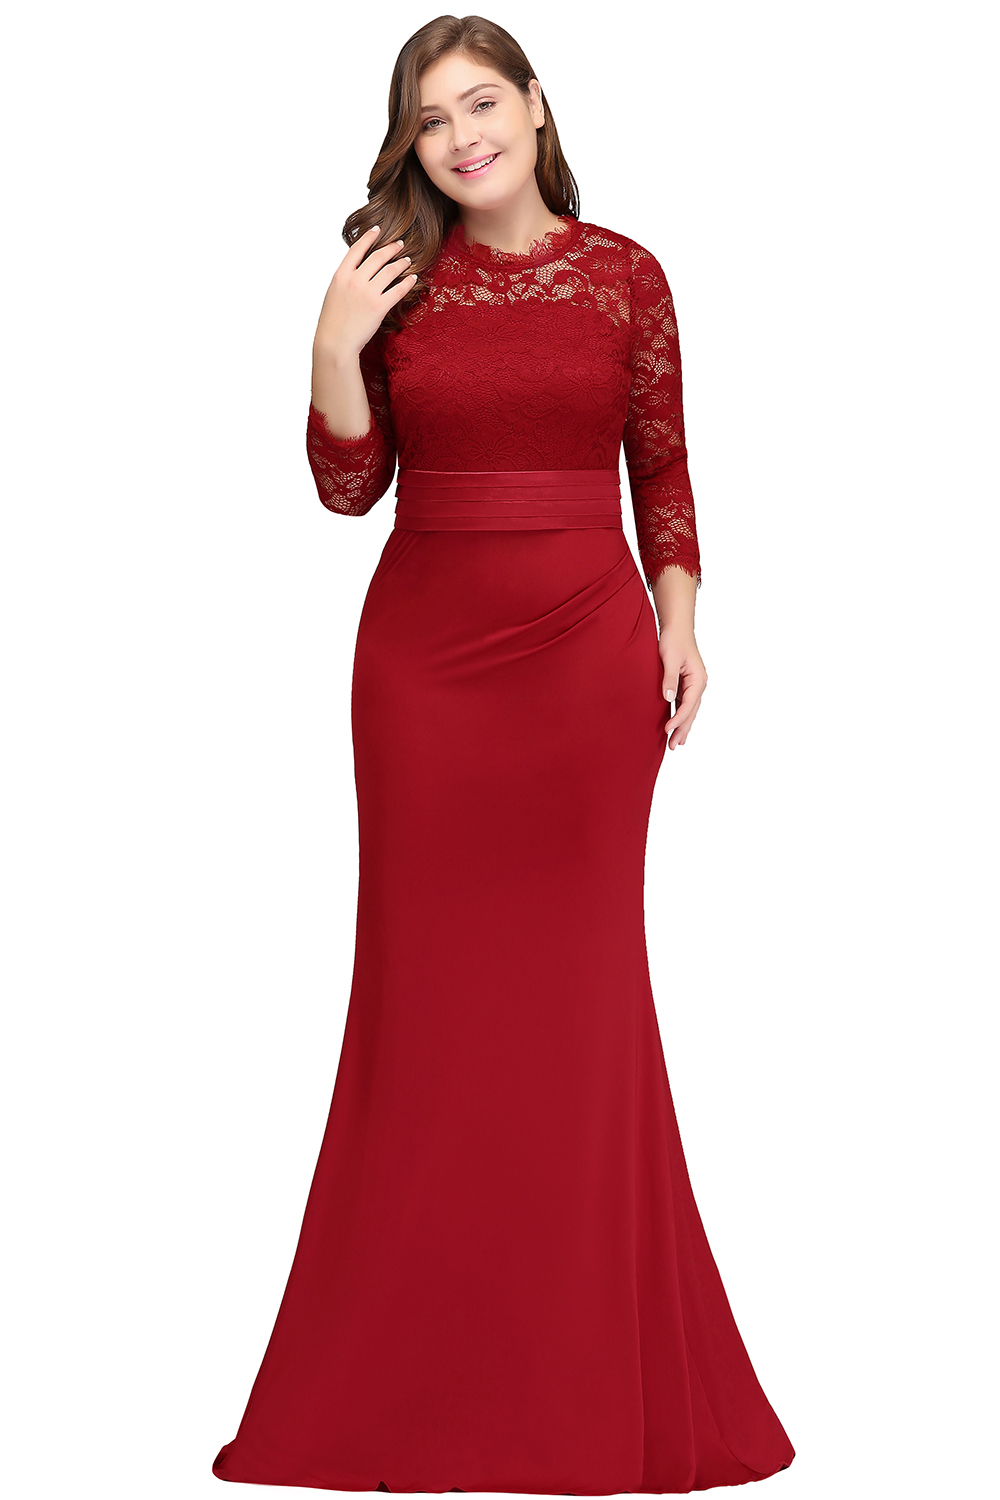 2019 Mermaid Plus Size Long Bridesmaid Dresses Scoop Neck 3/4 Sleeve Wedding Party Gown vestido madrinha